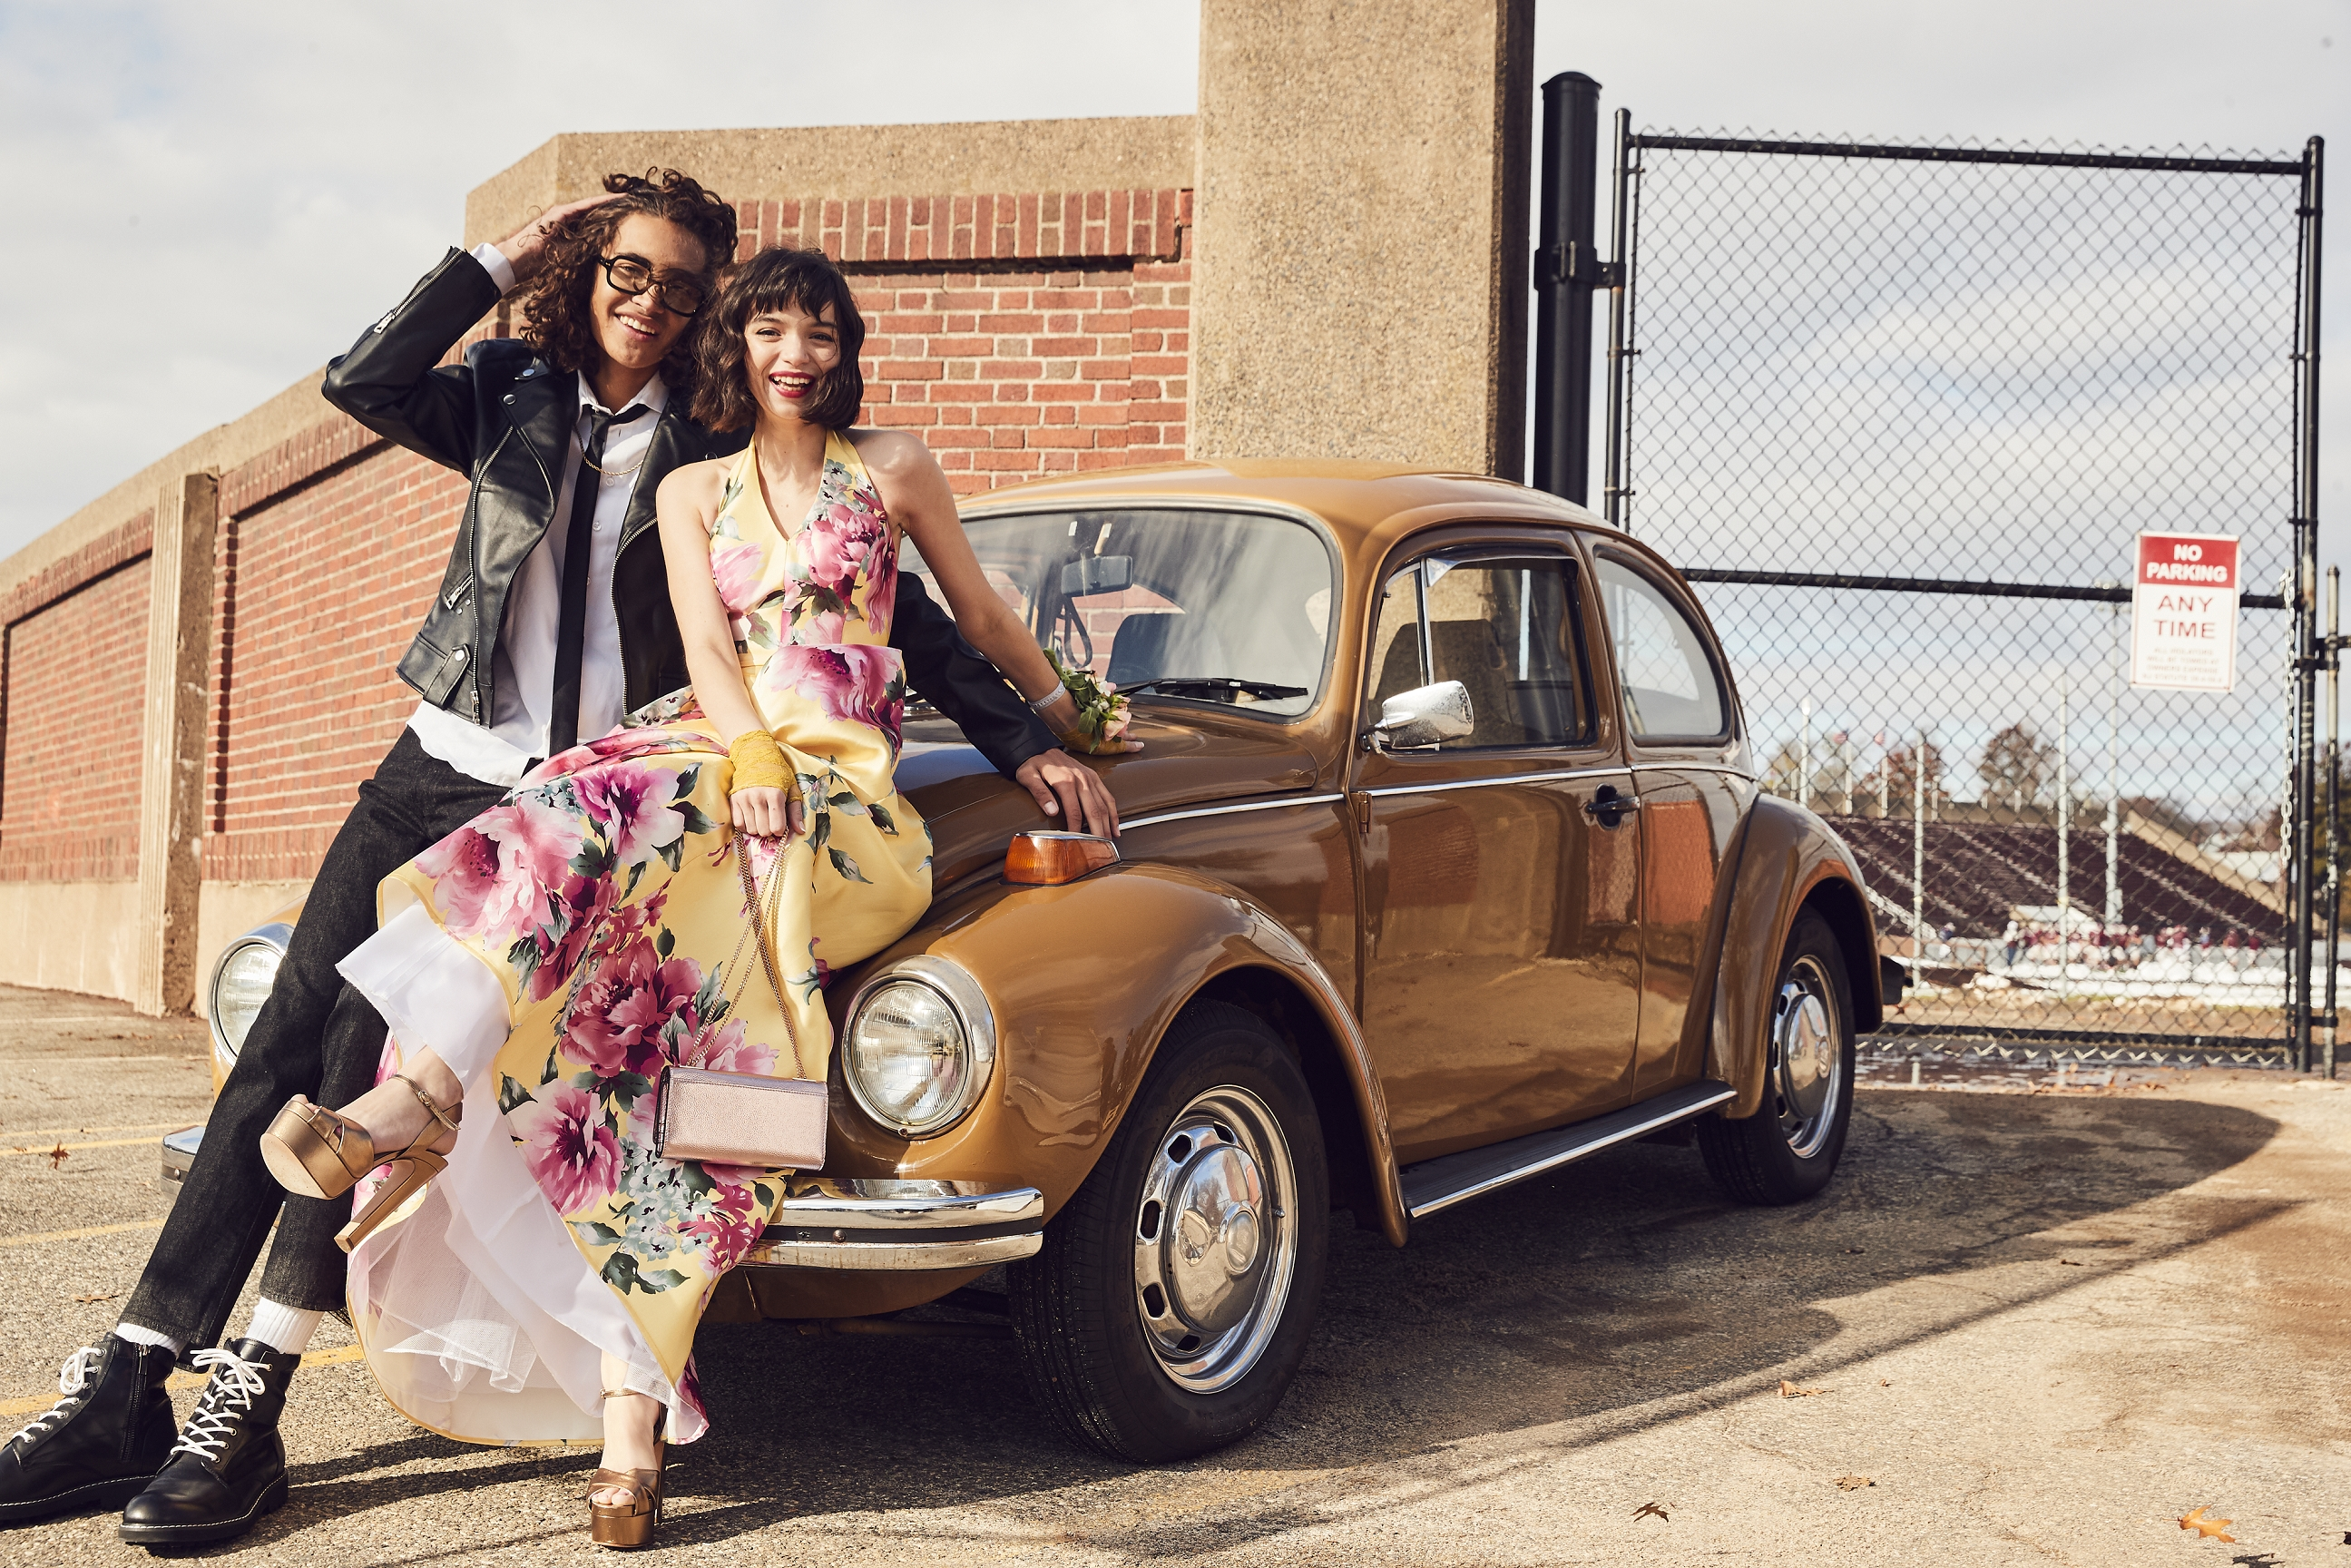 8771da01e7b7 Celebrate Prom With Remarkable Style From Macy's | Business Wire